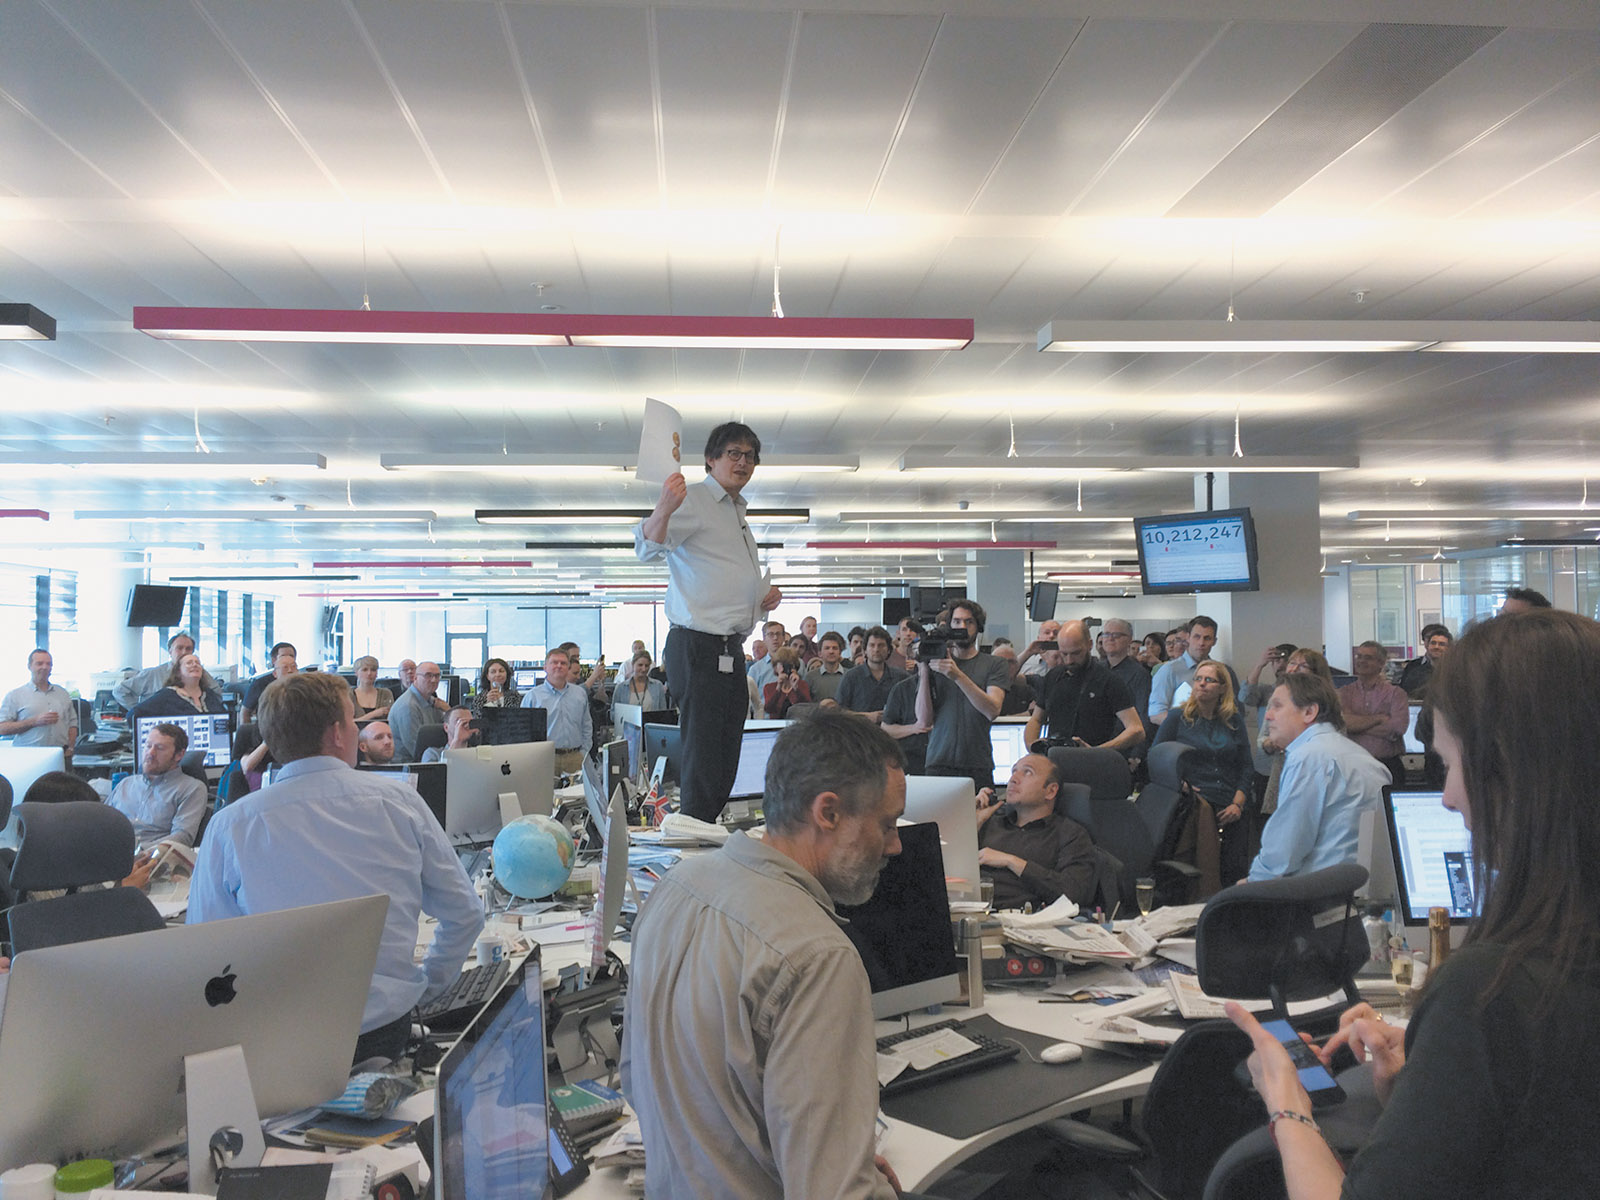 Alan Rusbridger, then editor of The Guardian, addressing the newsroom after the paper won the Pulitzer Prize for its reporting on the documents leaked by Edward Snowden